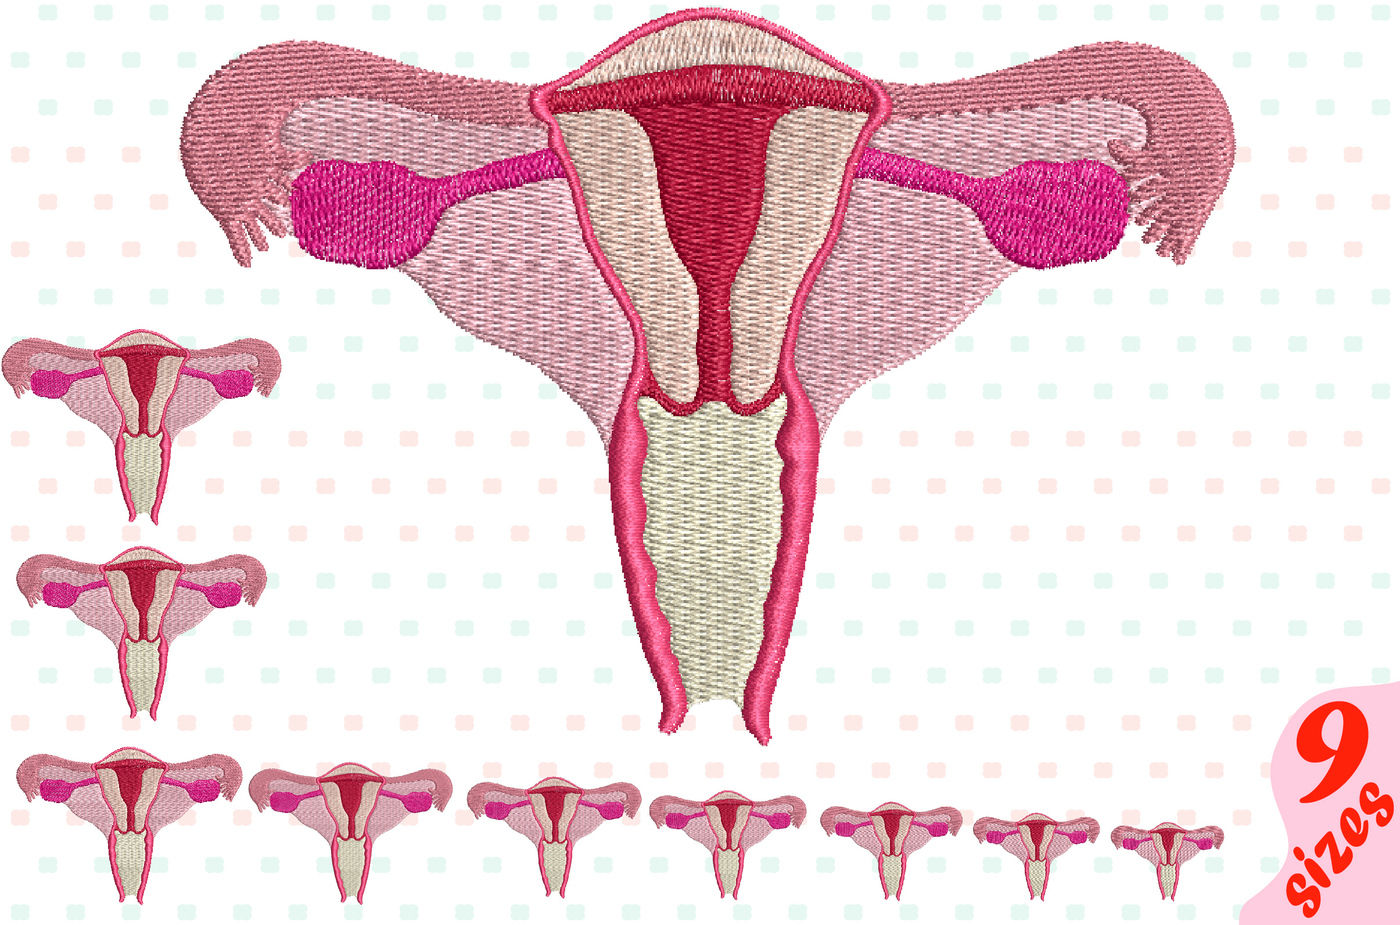 Uterus Embroidery Design Machine Instant Download Commercial